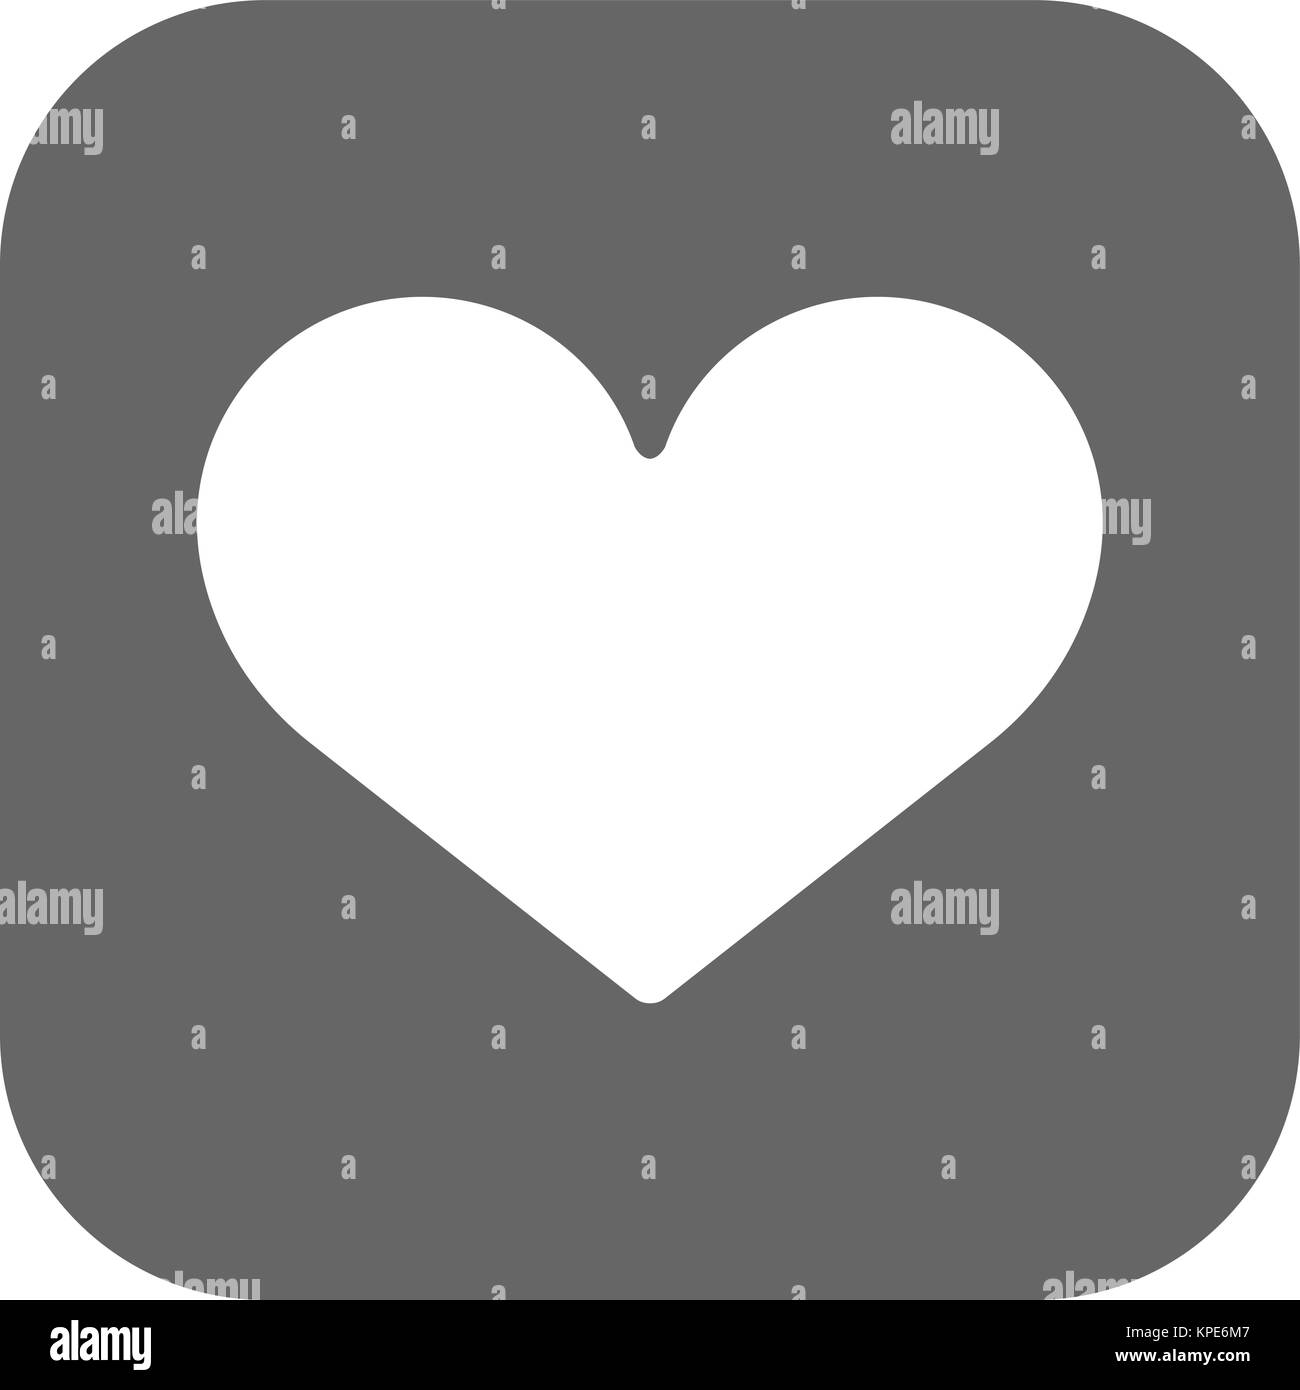 Human Heart Black And White Stock Photos Images Alamy